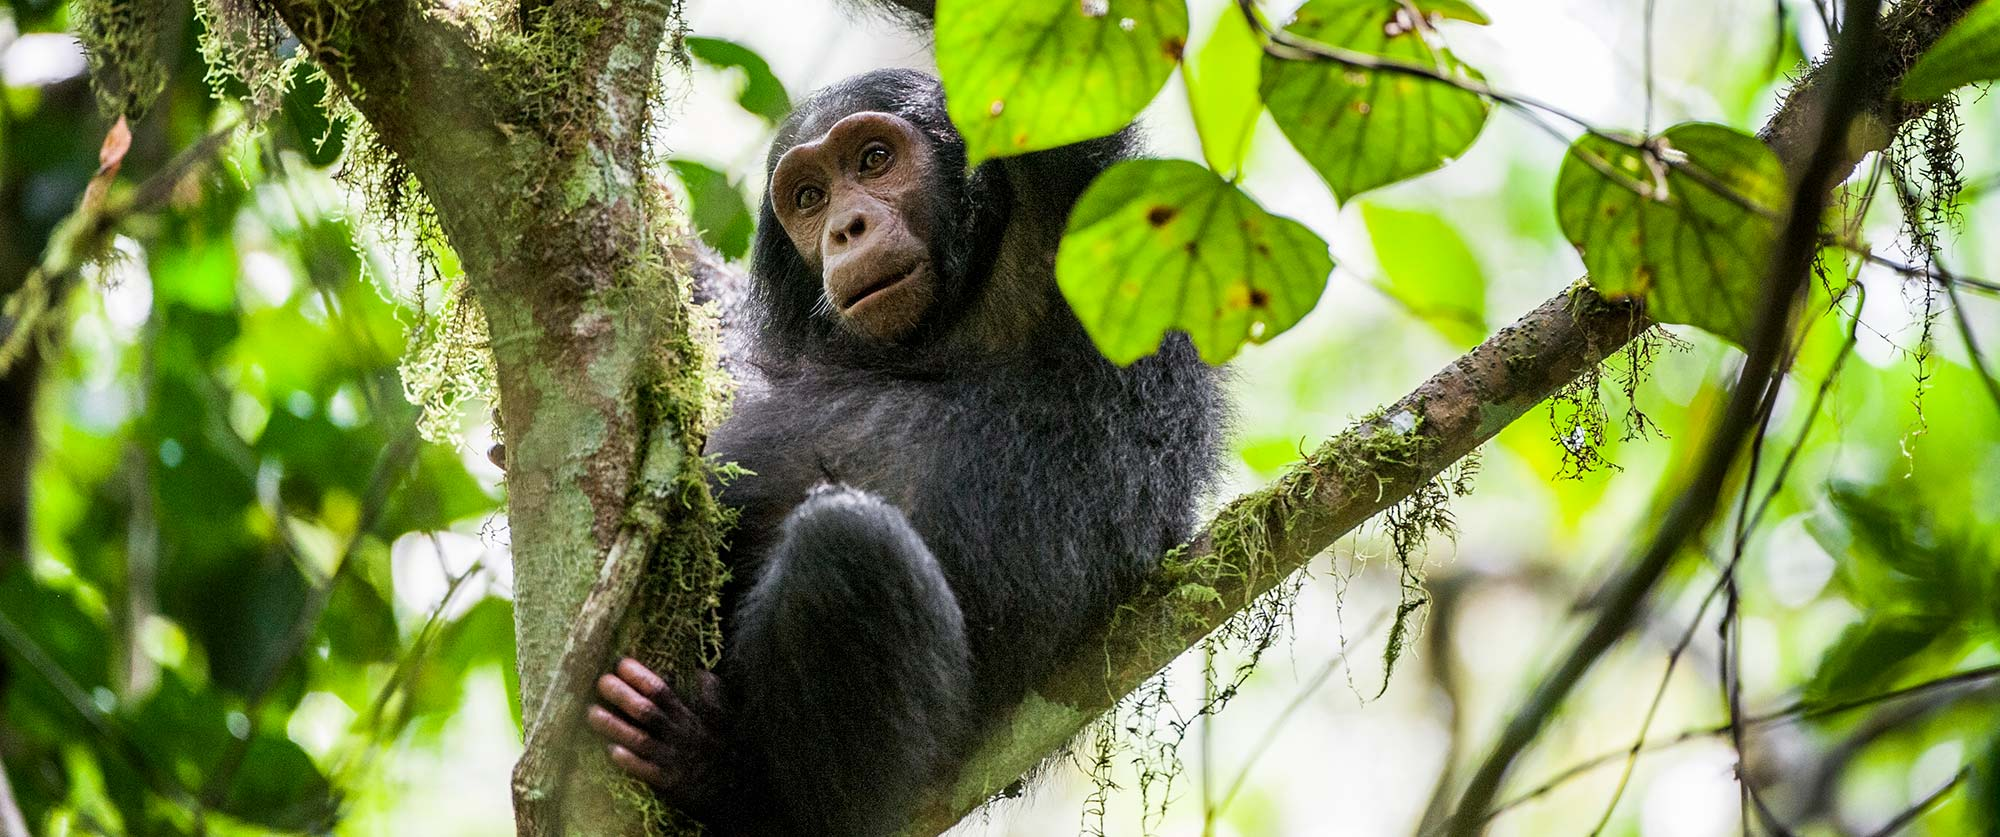 Chimpanzee Trekking in Kibale National Park - Uganda Wildlife Safari